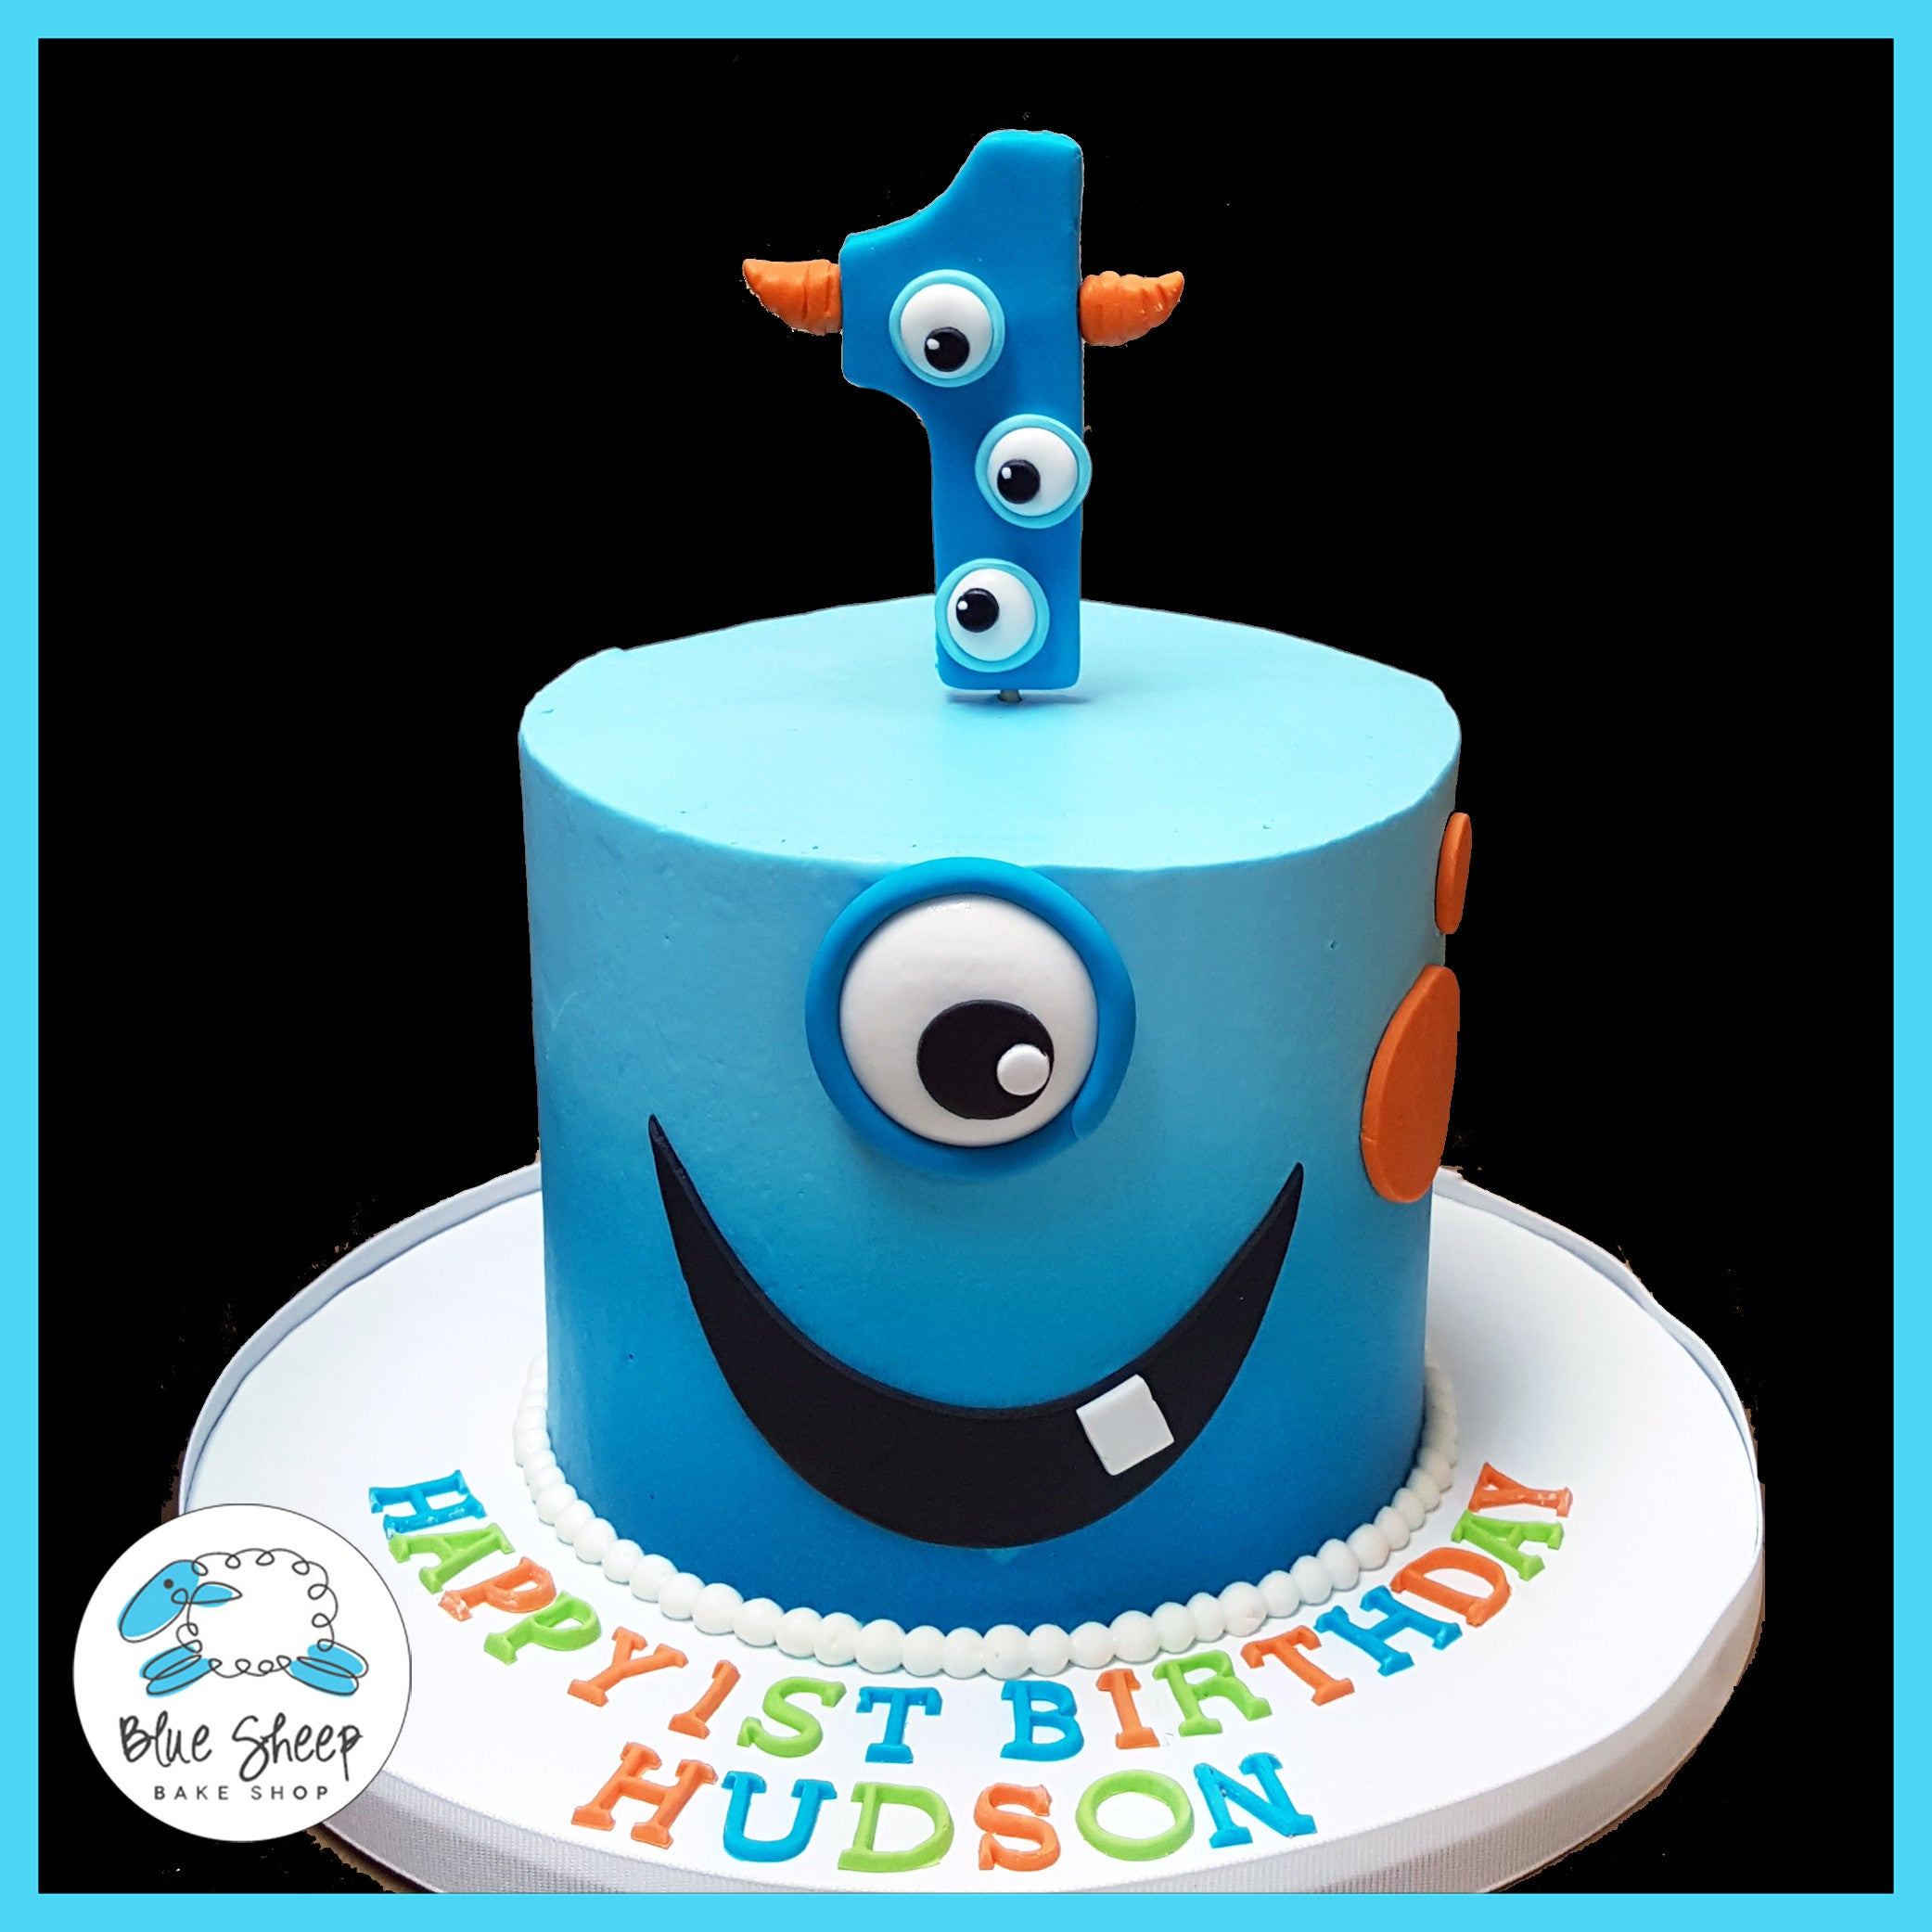 Admirable Hudsons 1St Birthday Monster Smash Cake Nj Blue Sheep Bake Shop Birthday Cards Printable Riciscafe Filternl